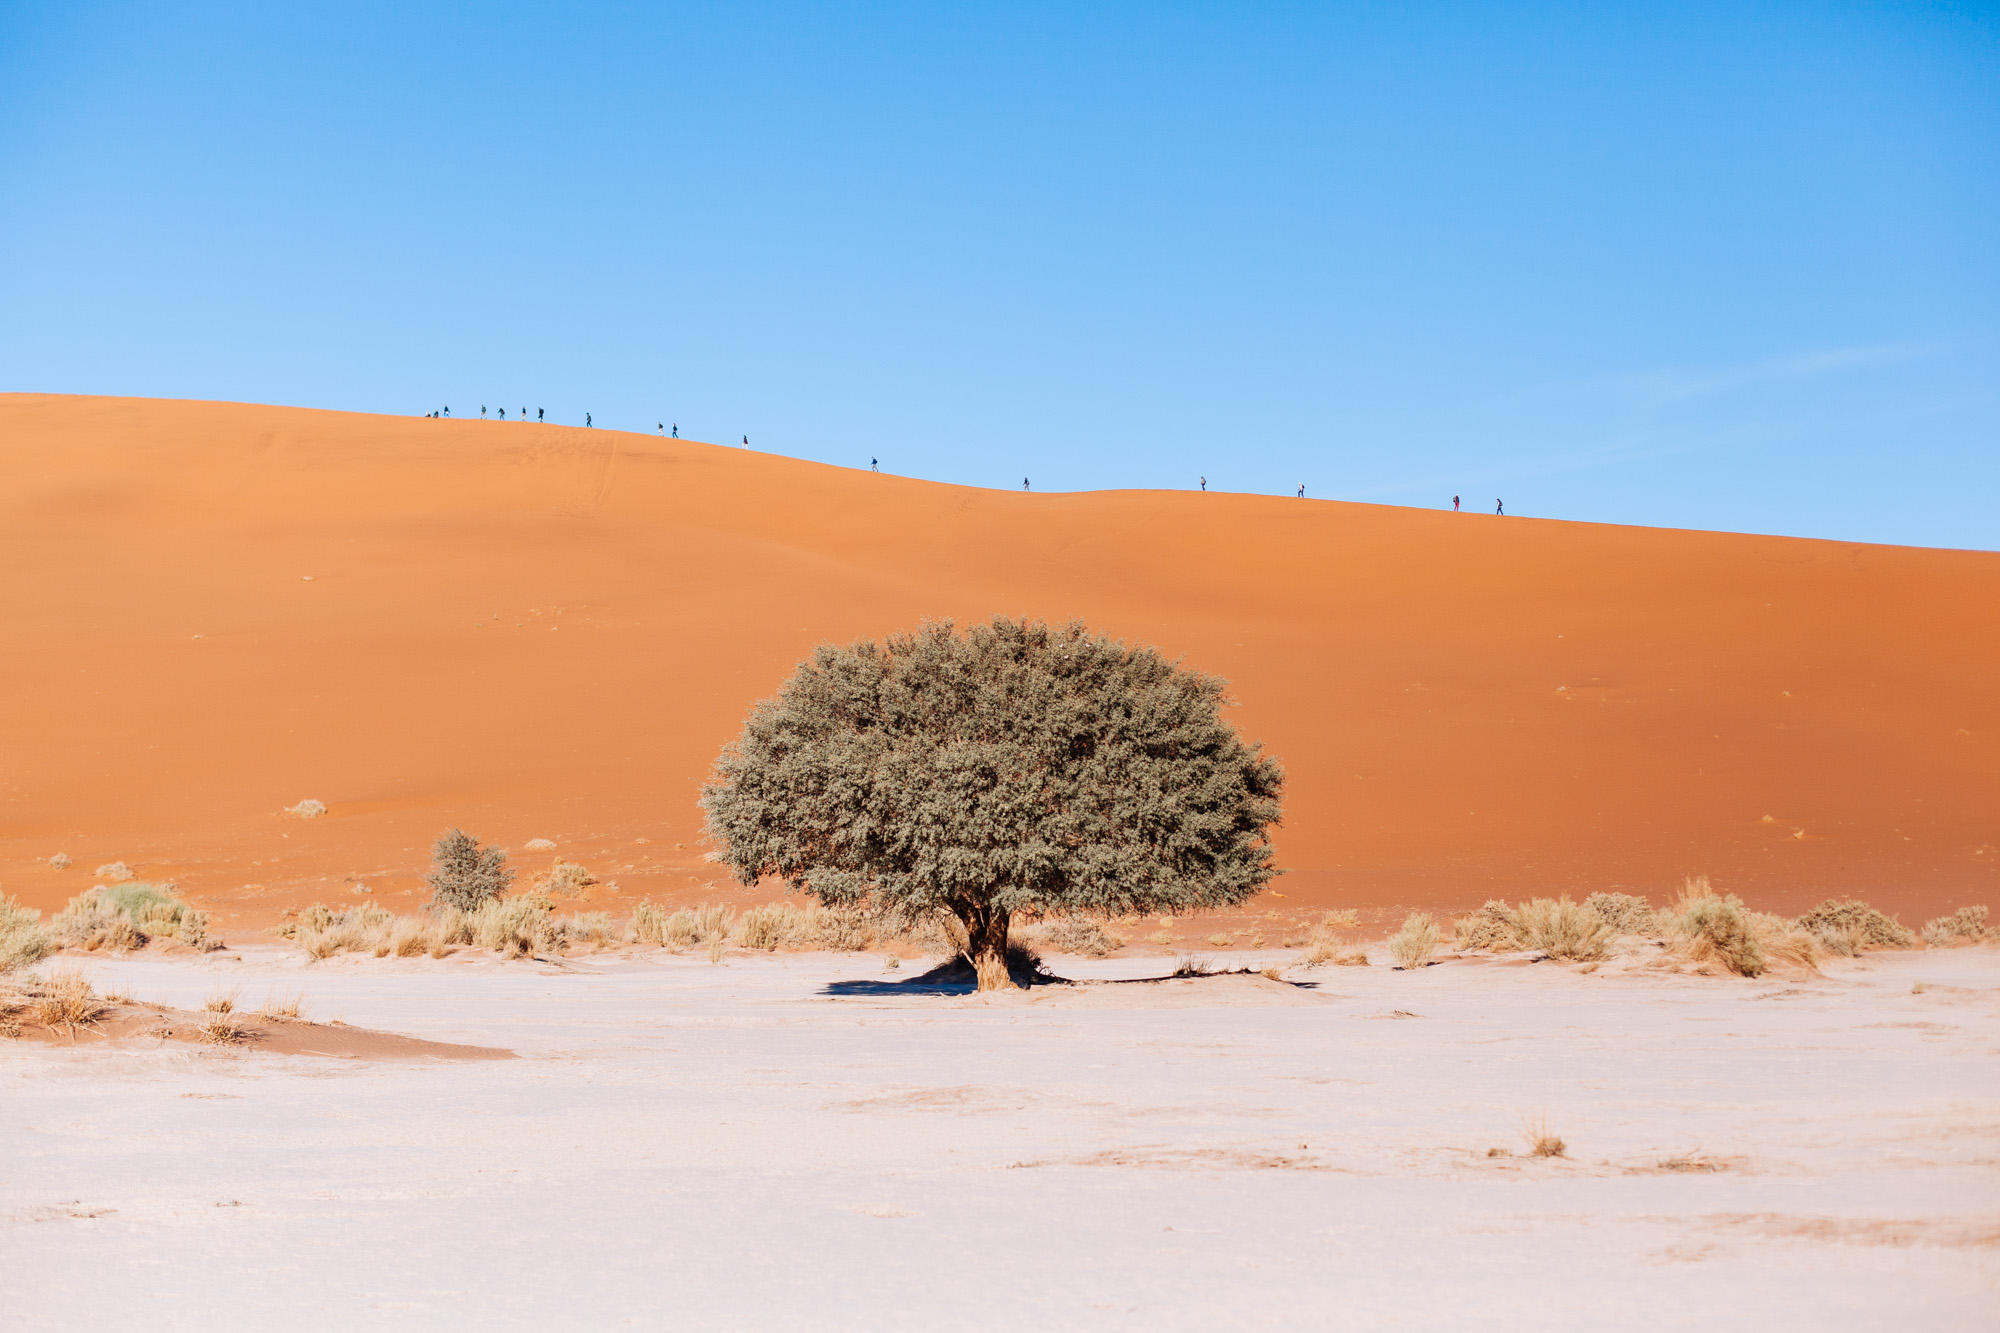 The famous orange dunes of Sossusvlei with an army of tourists making their way up to the top of Big Daddy dune.